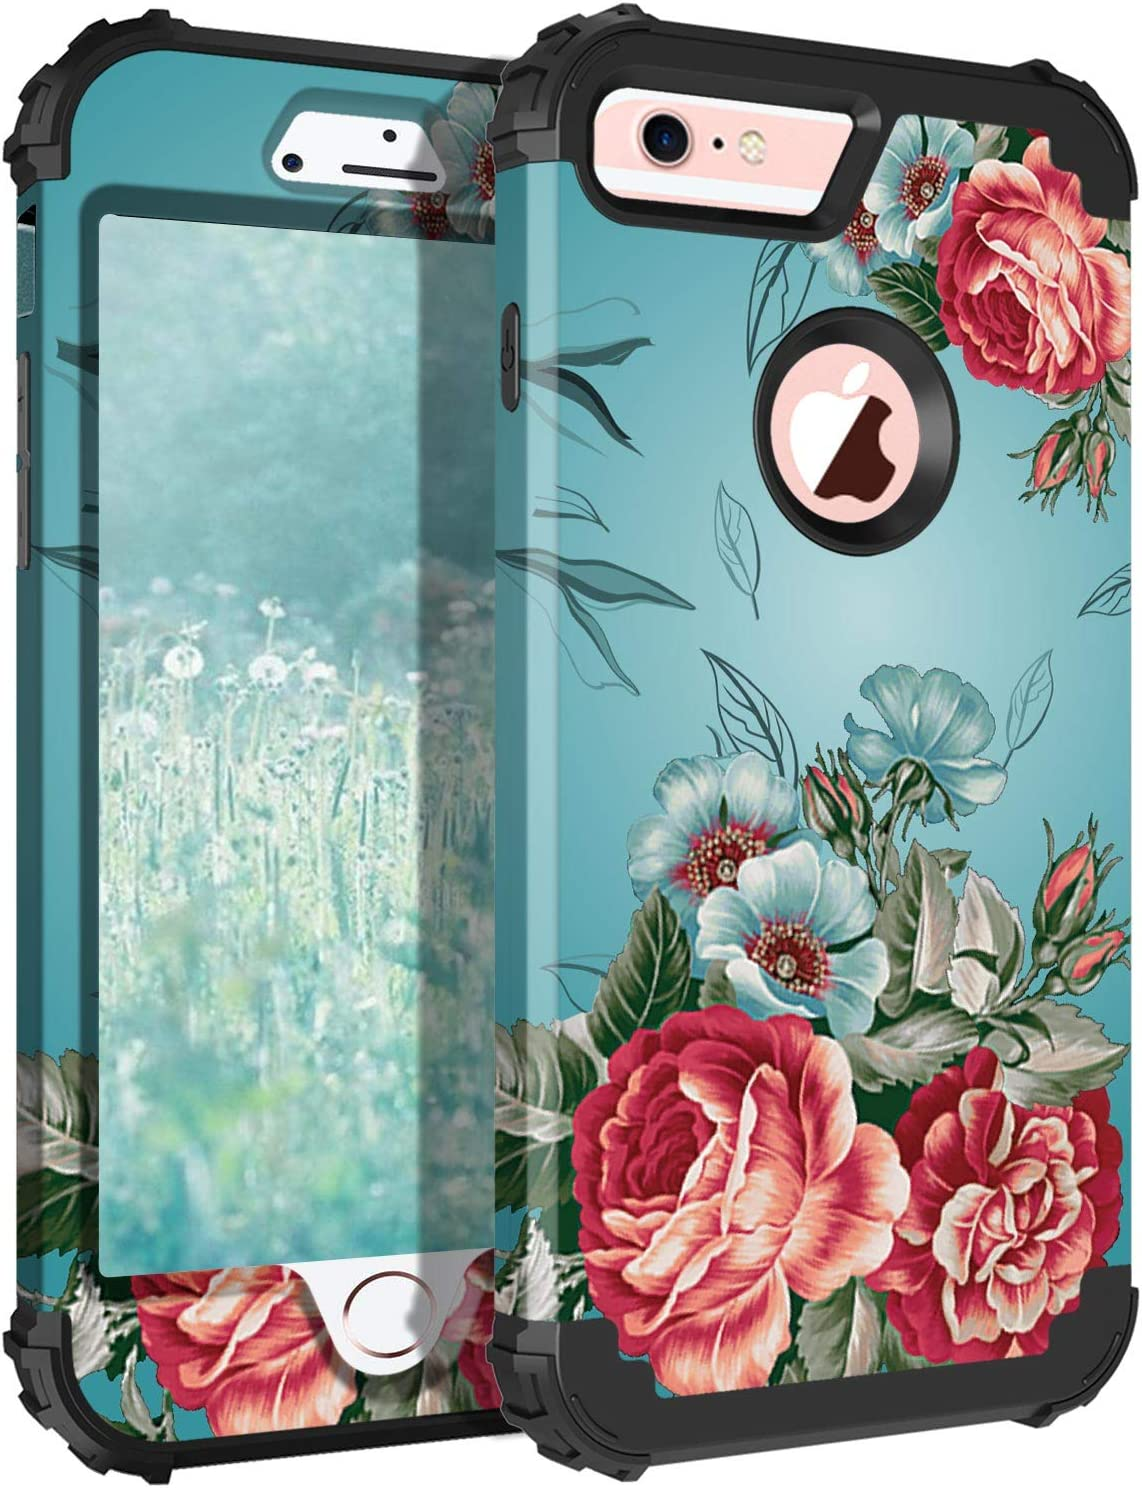 Lontect Compatible iPhone 6s Case iPhone 6 Case Floral 3 in 1 Heavy Duty Hybrid Sturdy High Impact Shockproof Protective Cover Case for Apple iPhone 6/6s, Teal/Red Flower